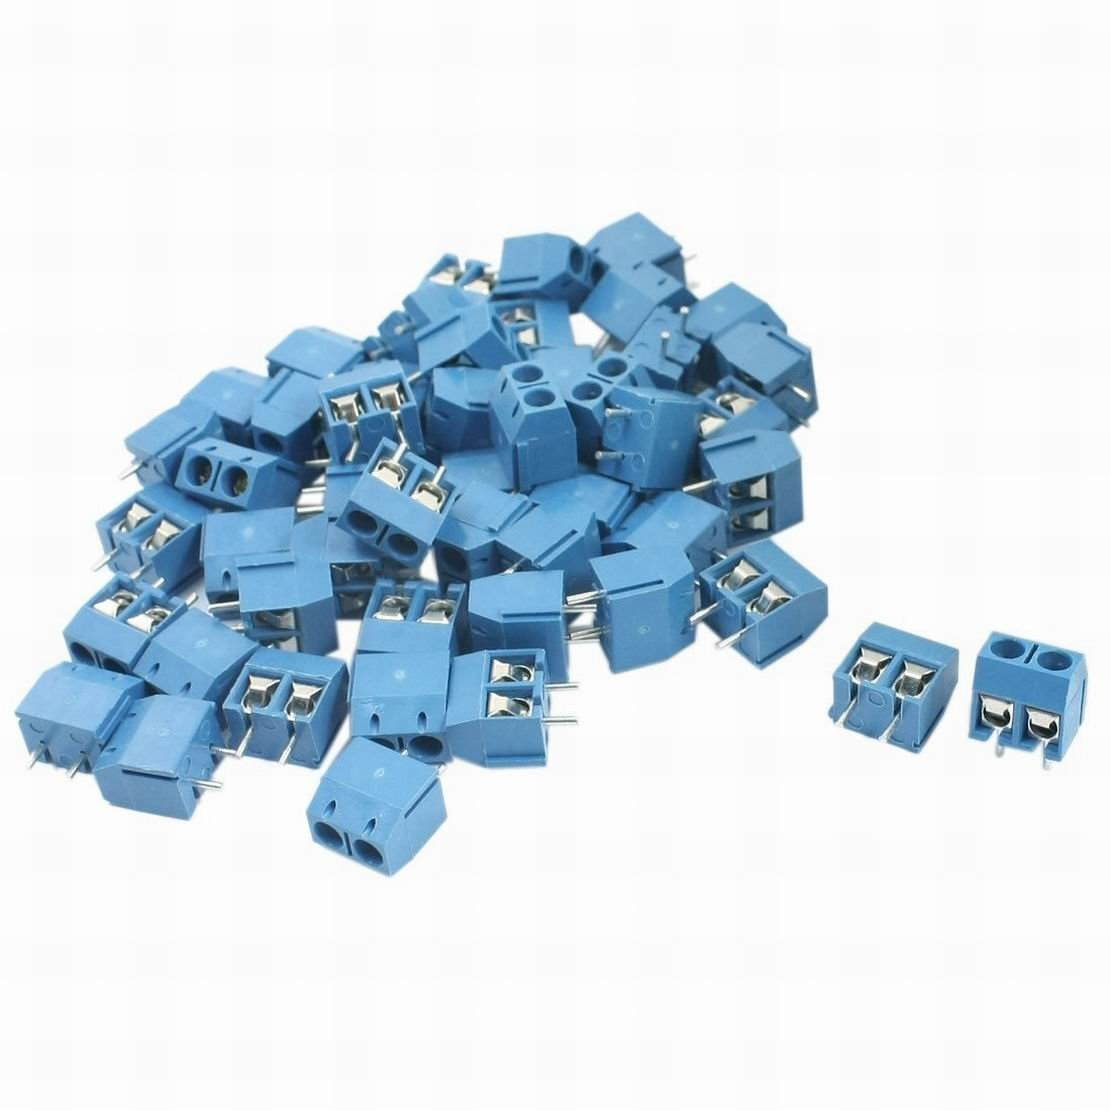 Ugtell 50Pcs 5mm Pitch Pluggable Type Blue Screw Terminal Block 300V 12A